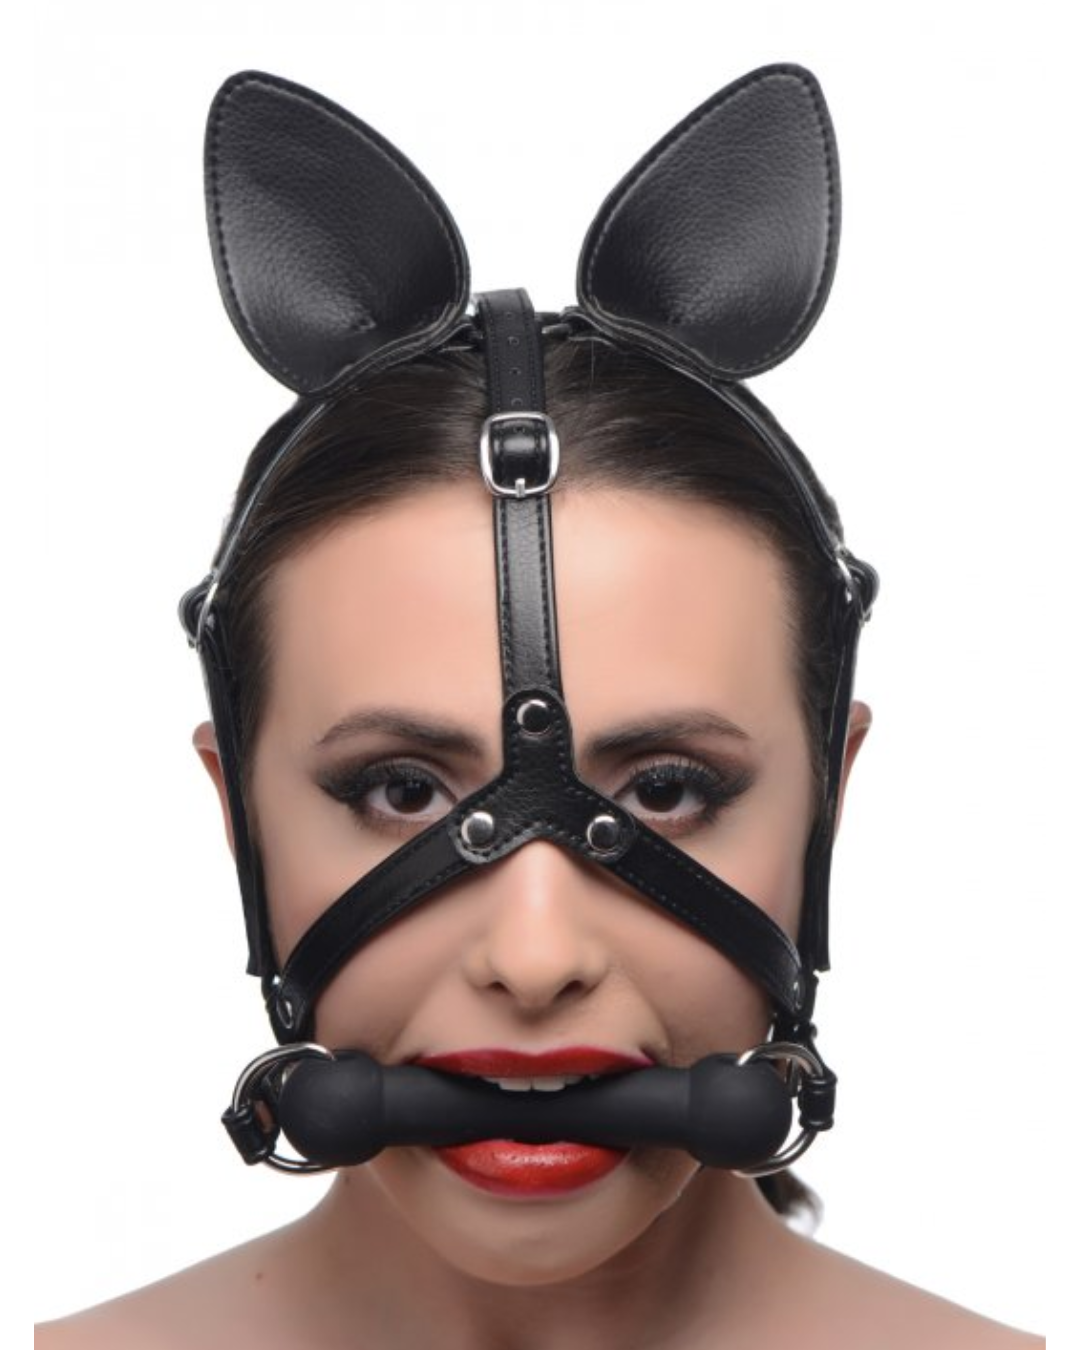 Dark Horse Pony Head Harness With Silicone Bit - Black WORN BY A FEMALE MODEL